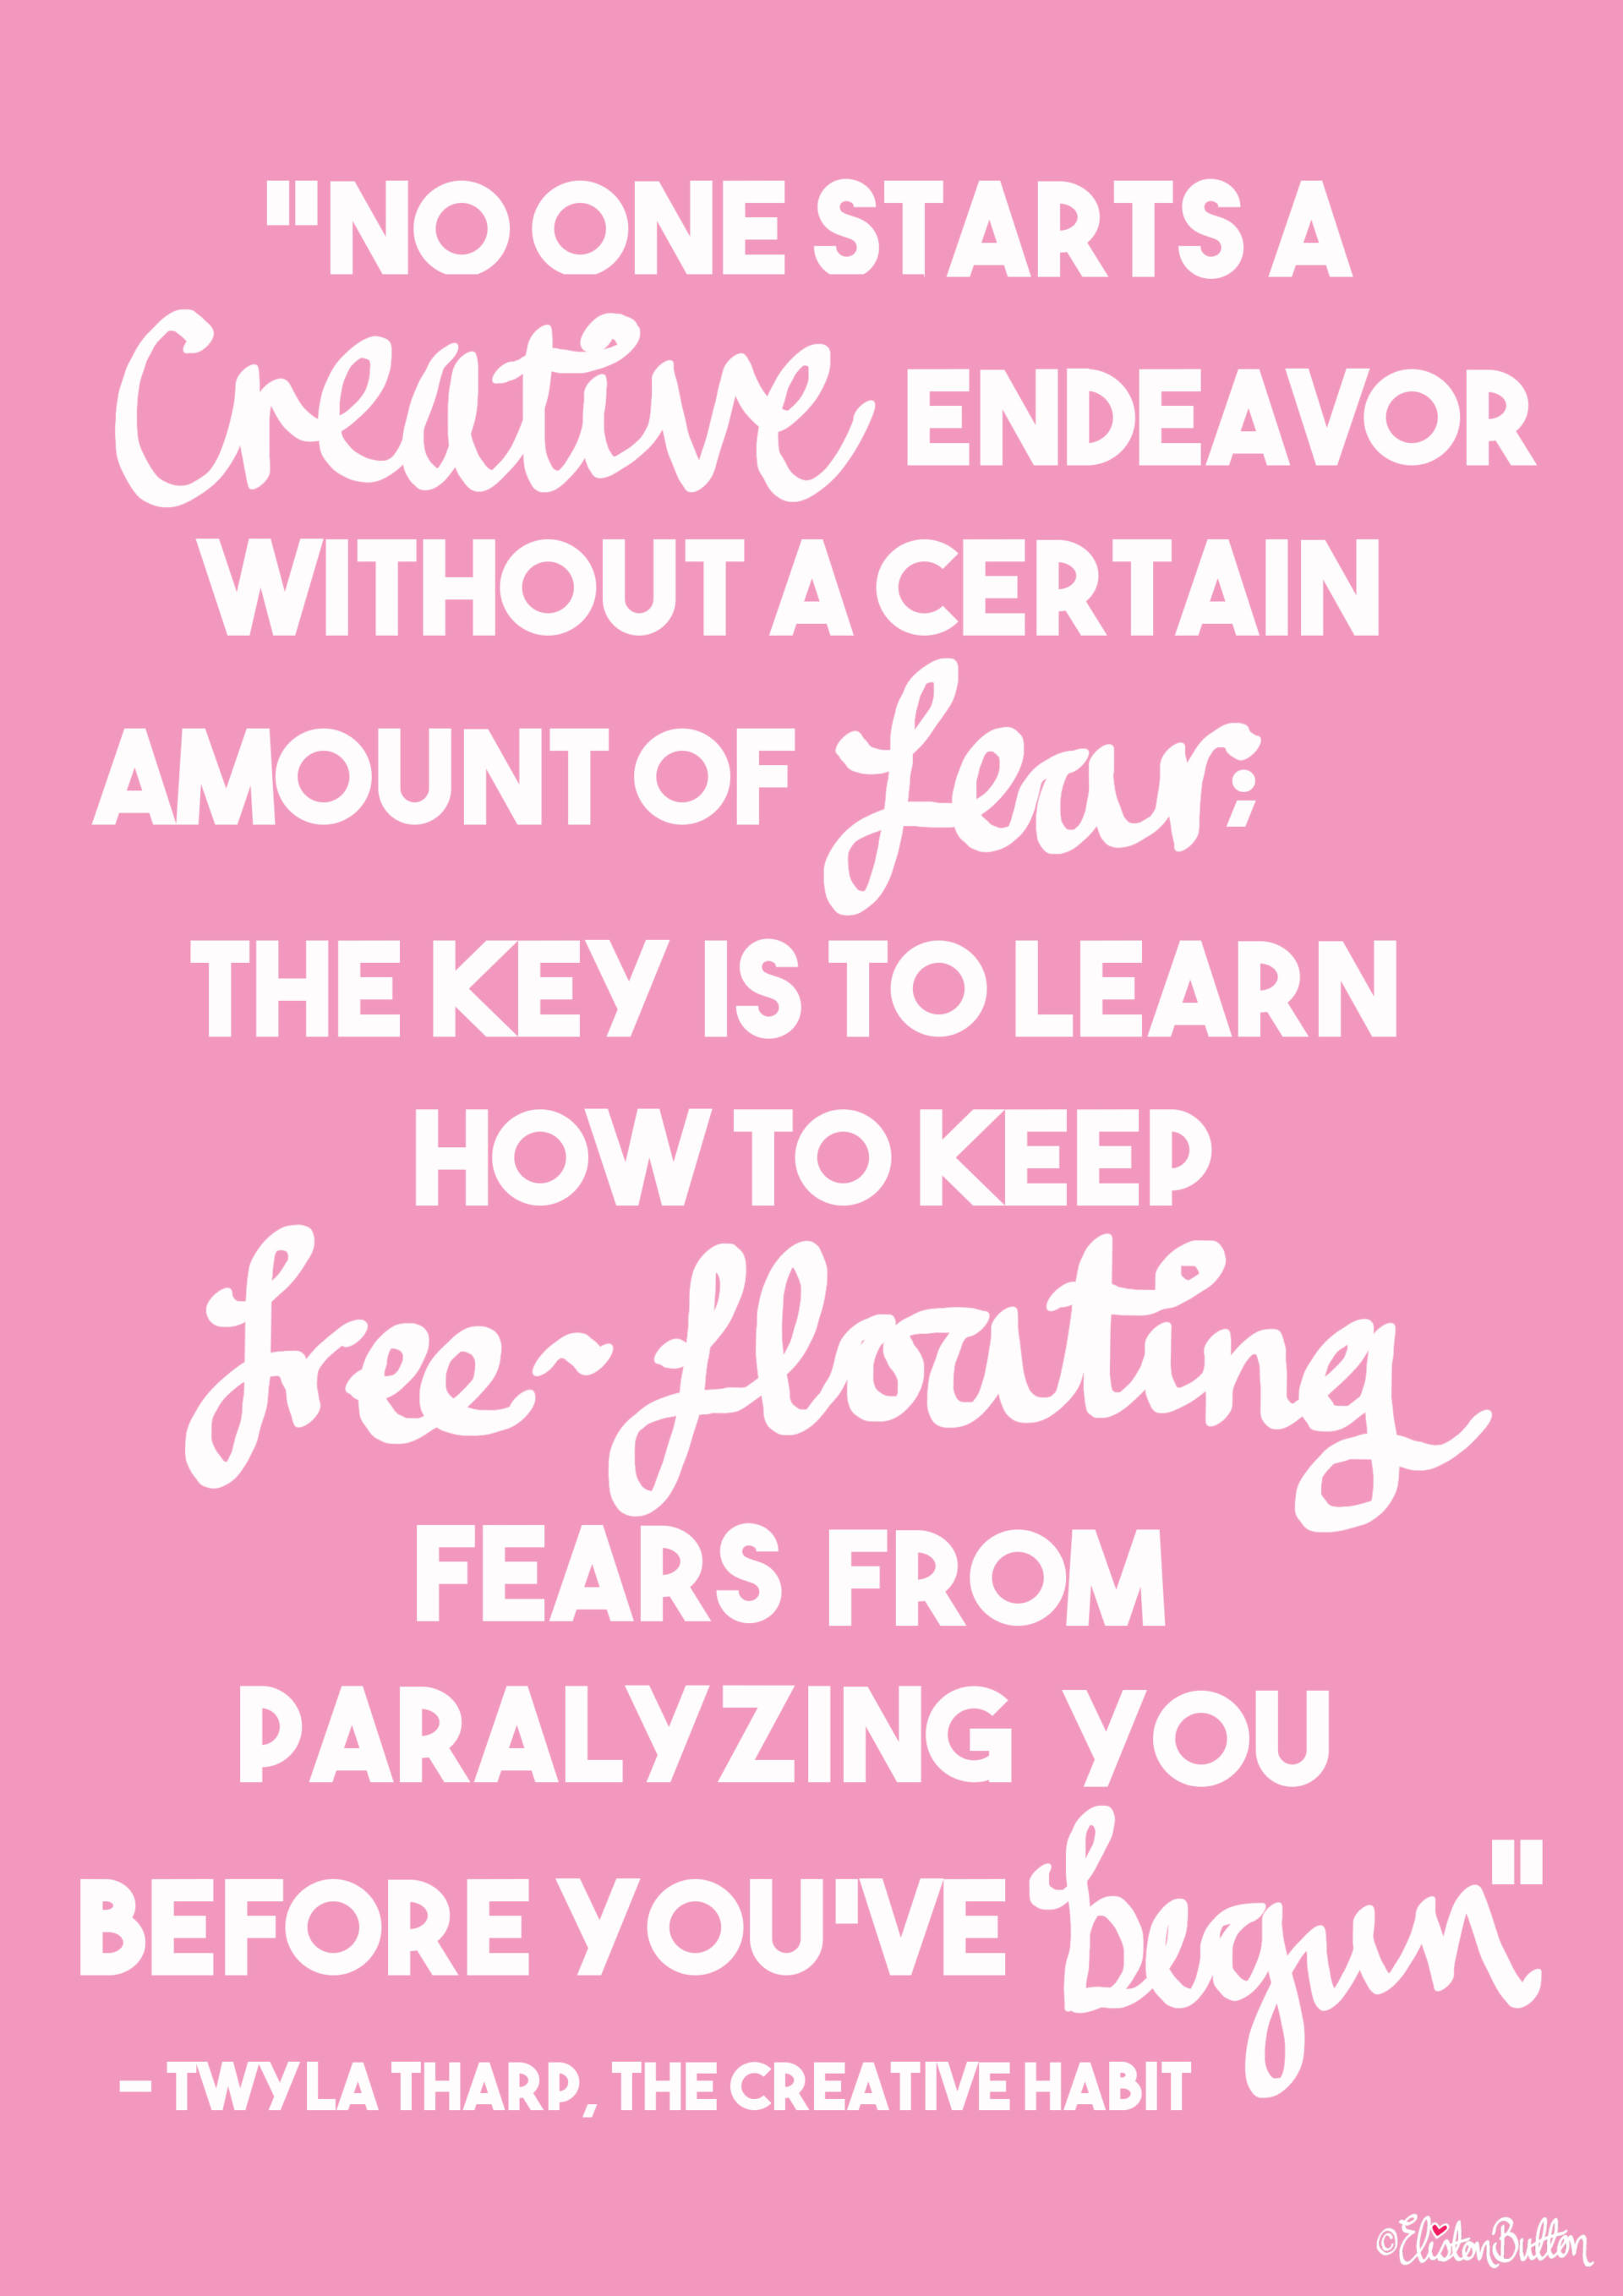 Fear in Creative Endeavors - Twyla Tharp Quote and Hand Lettering by Eliston Button - Create 30 – Let's Do This! at www.elistonbutton.com - Eliston Button - That Crafty Kid – Art, Design, Craft & Adventure.